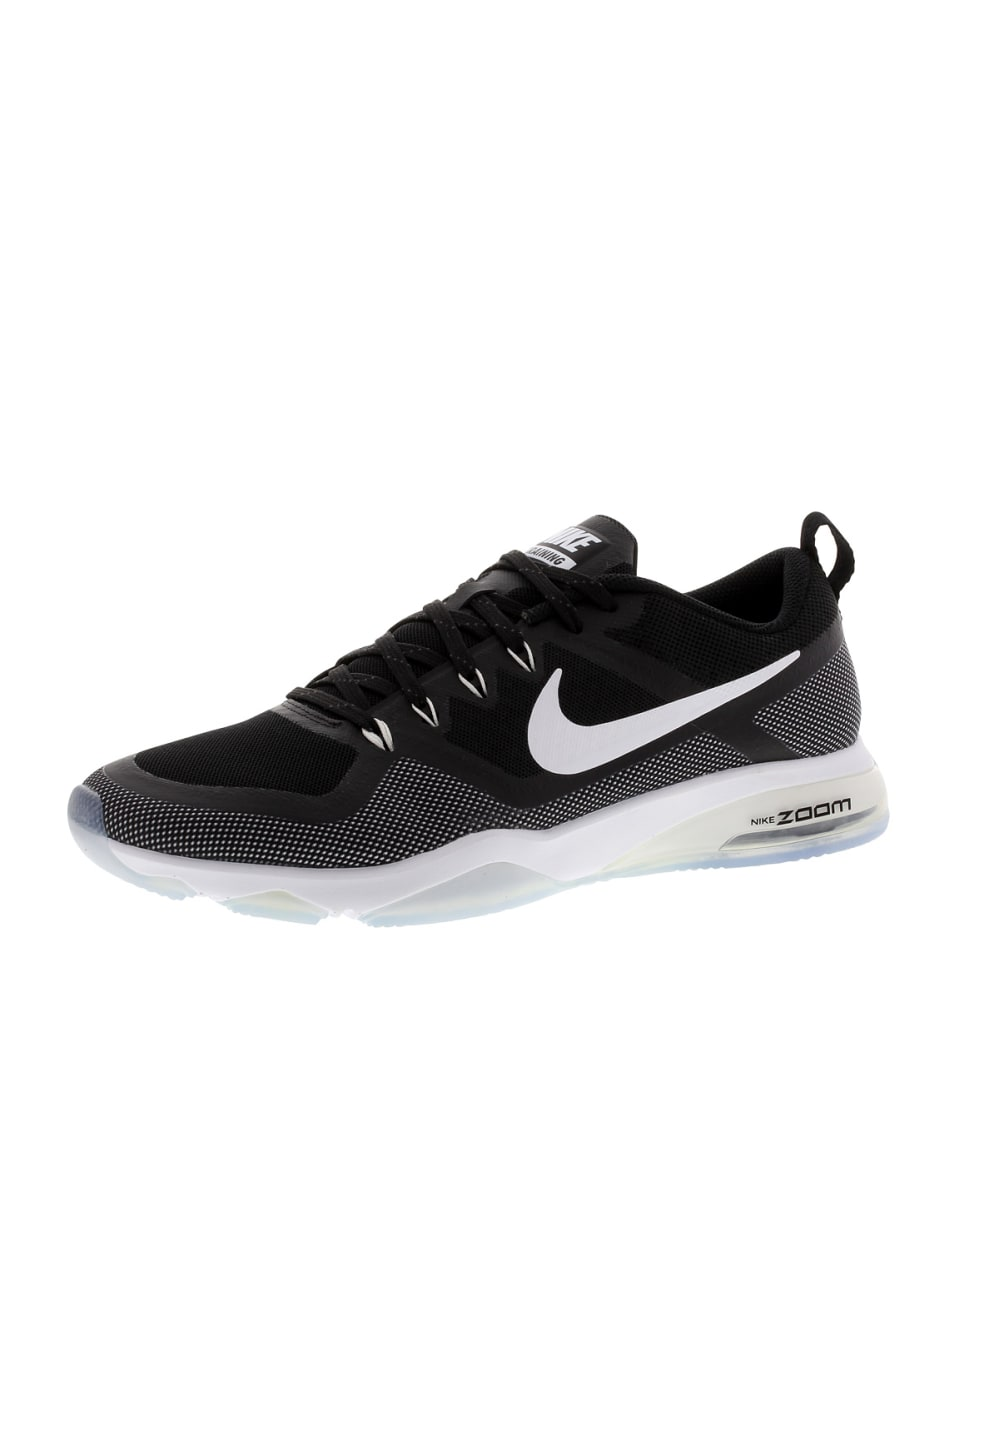 04fab8198c5d3 Nike Zoom Fitness - Fitness shoes for Women - Black